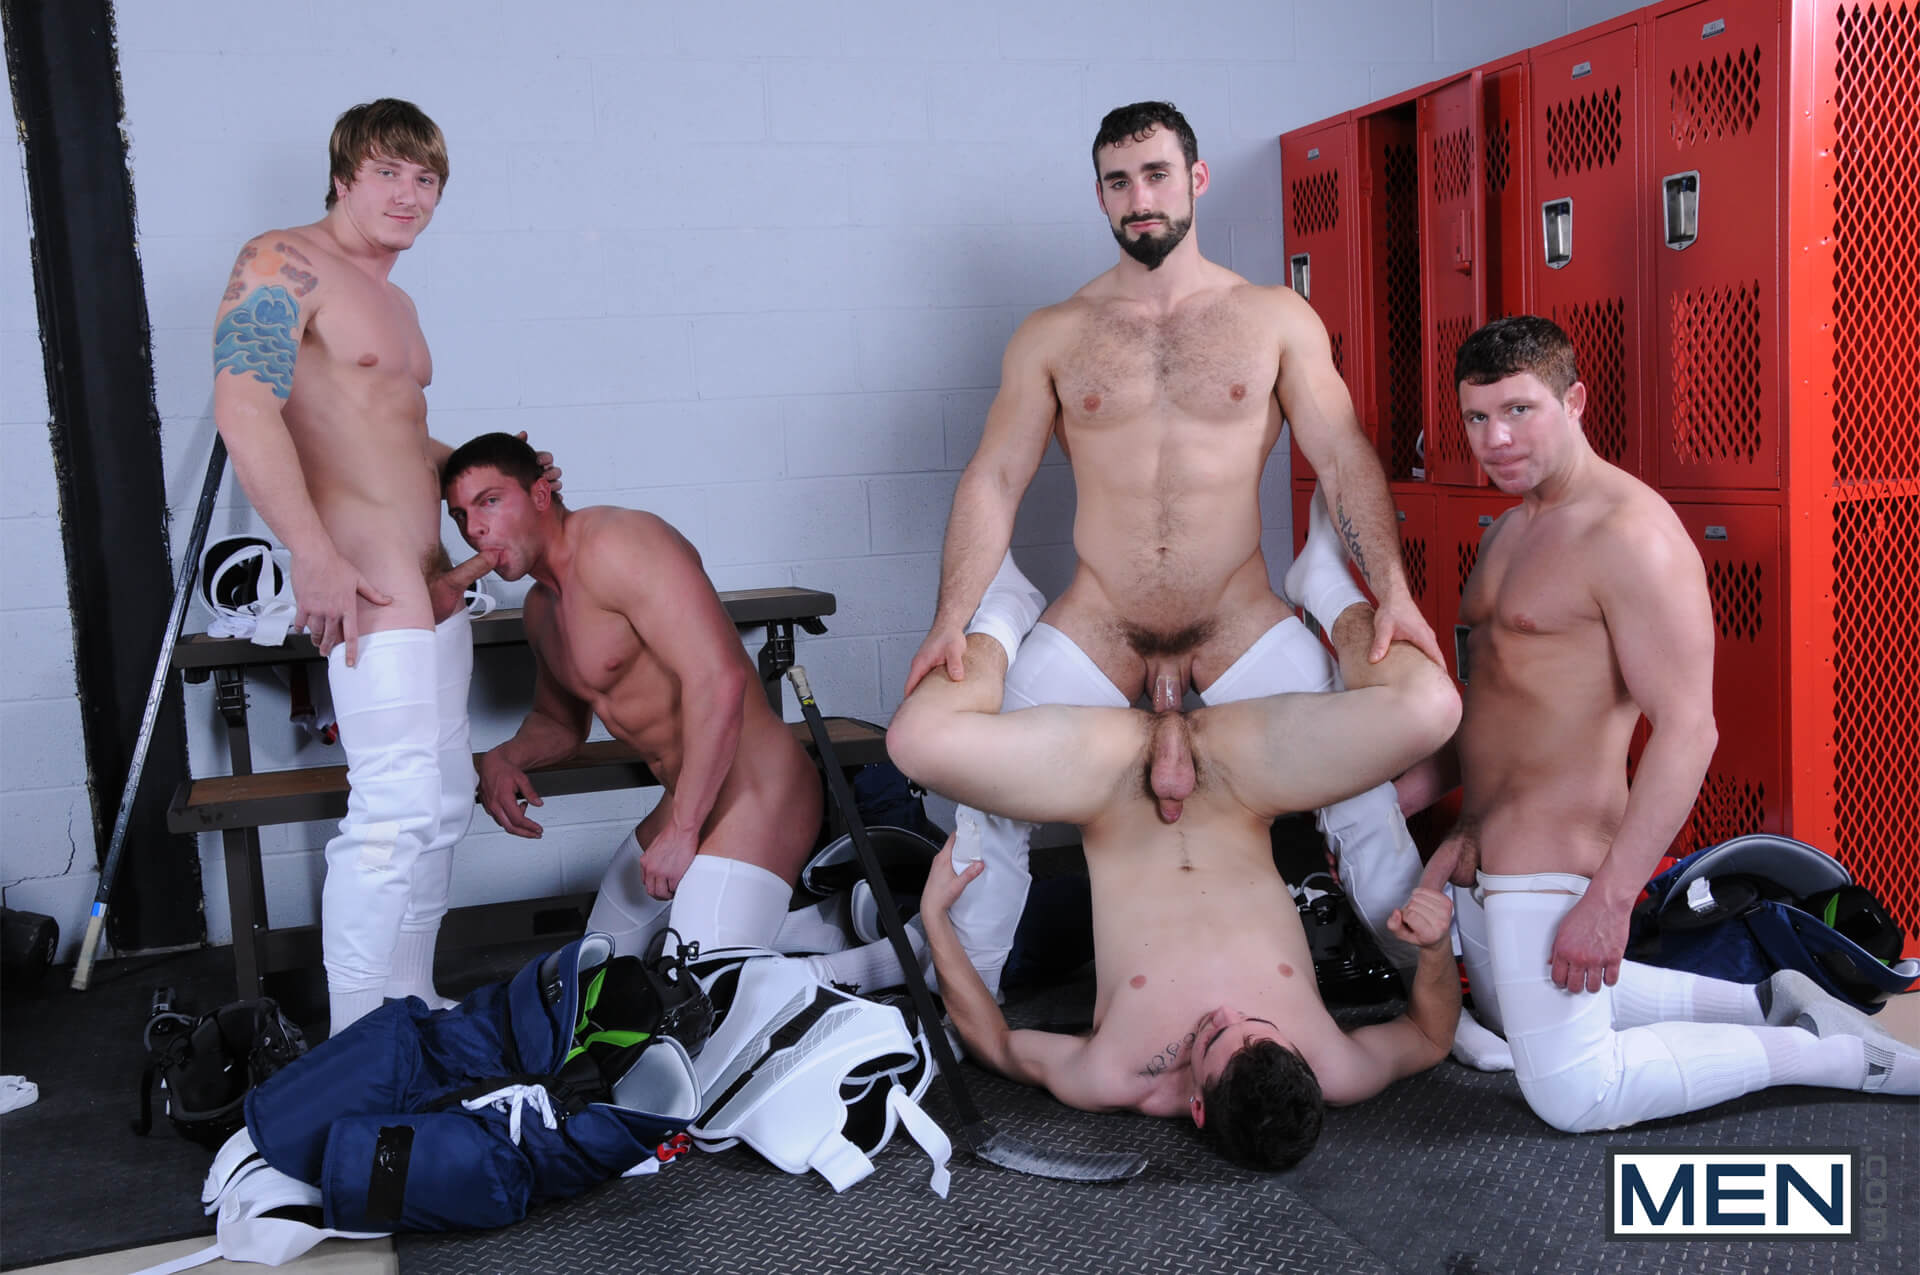 MEN.COM » Jizz Orgy » Team USA Part 3 » Asher Hawk » Jake Wilder » Jaxton Wheeler » Tom Faulk » Travis James